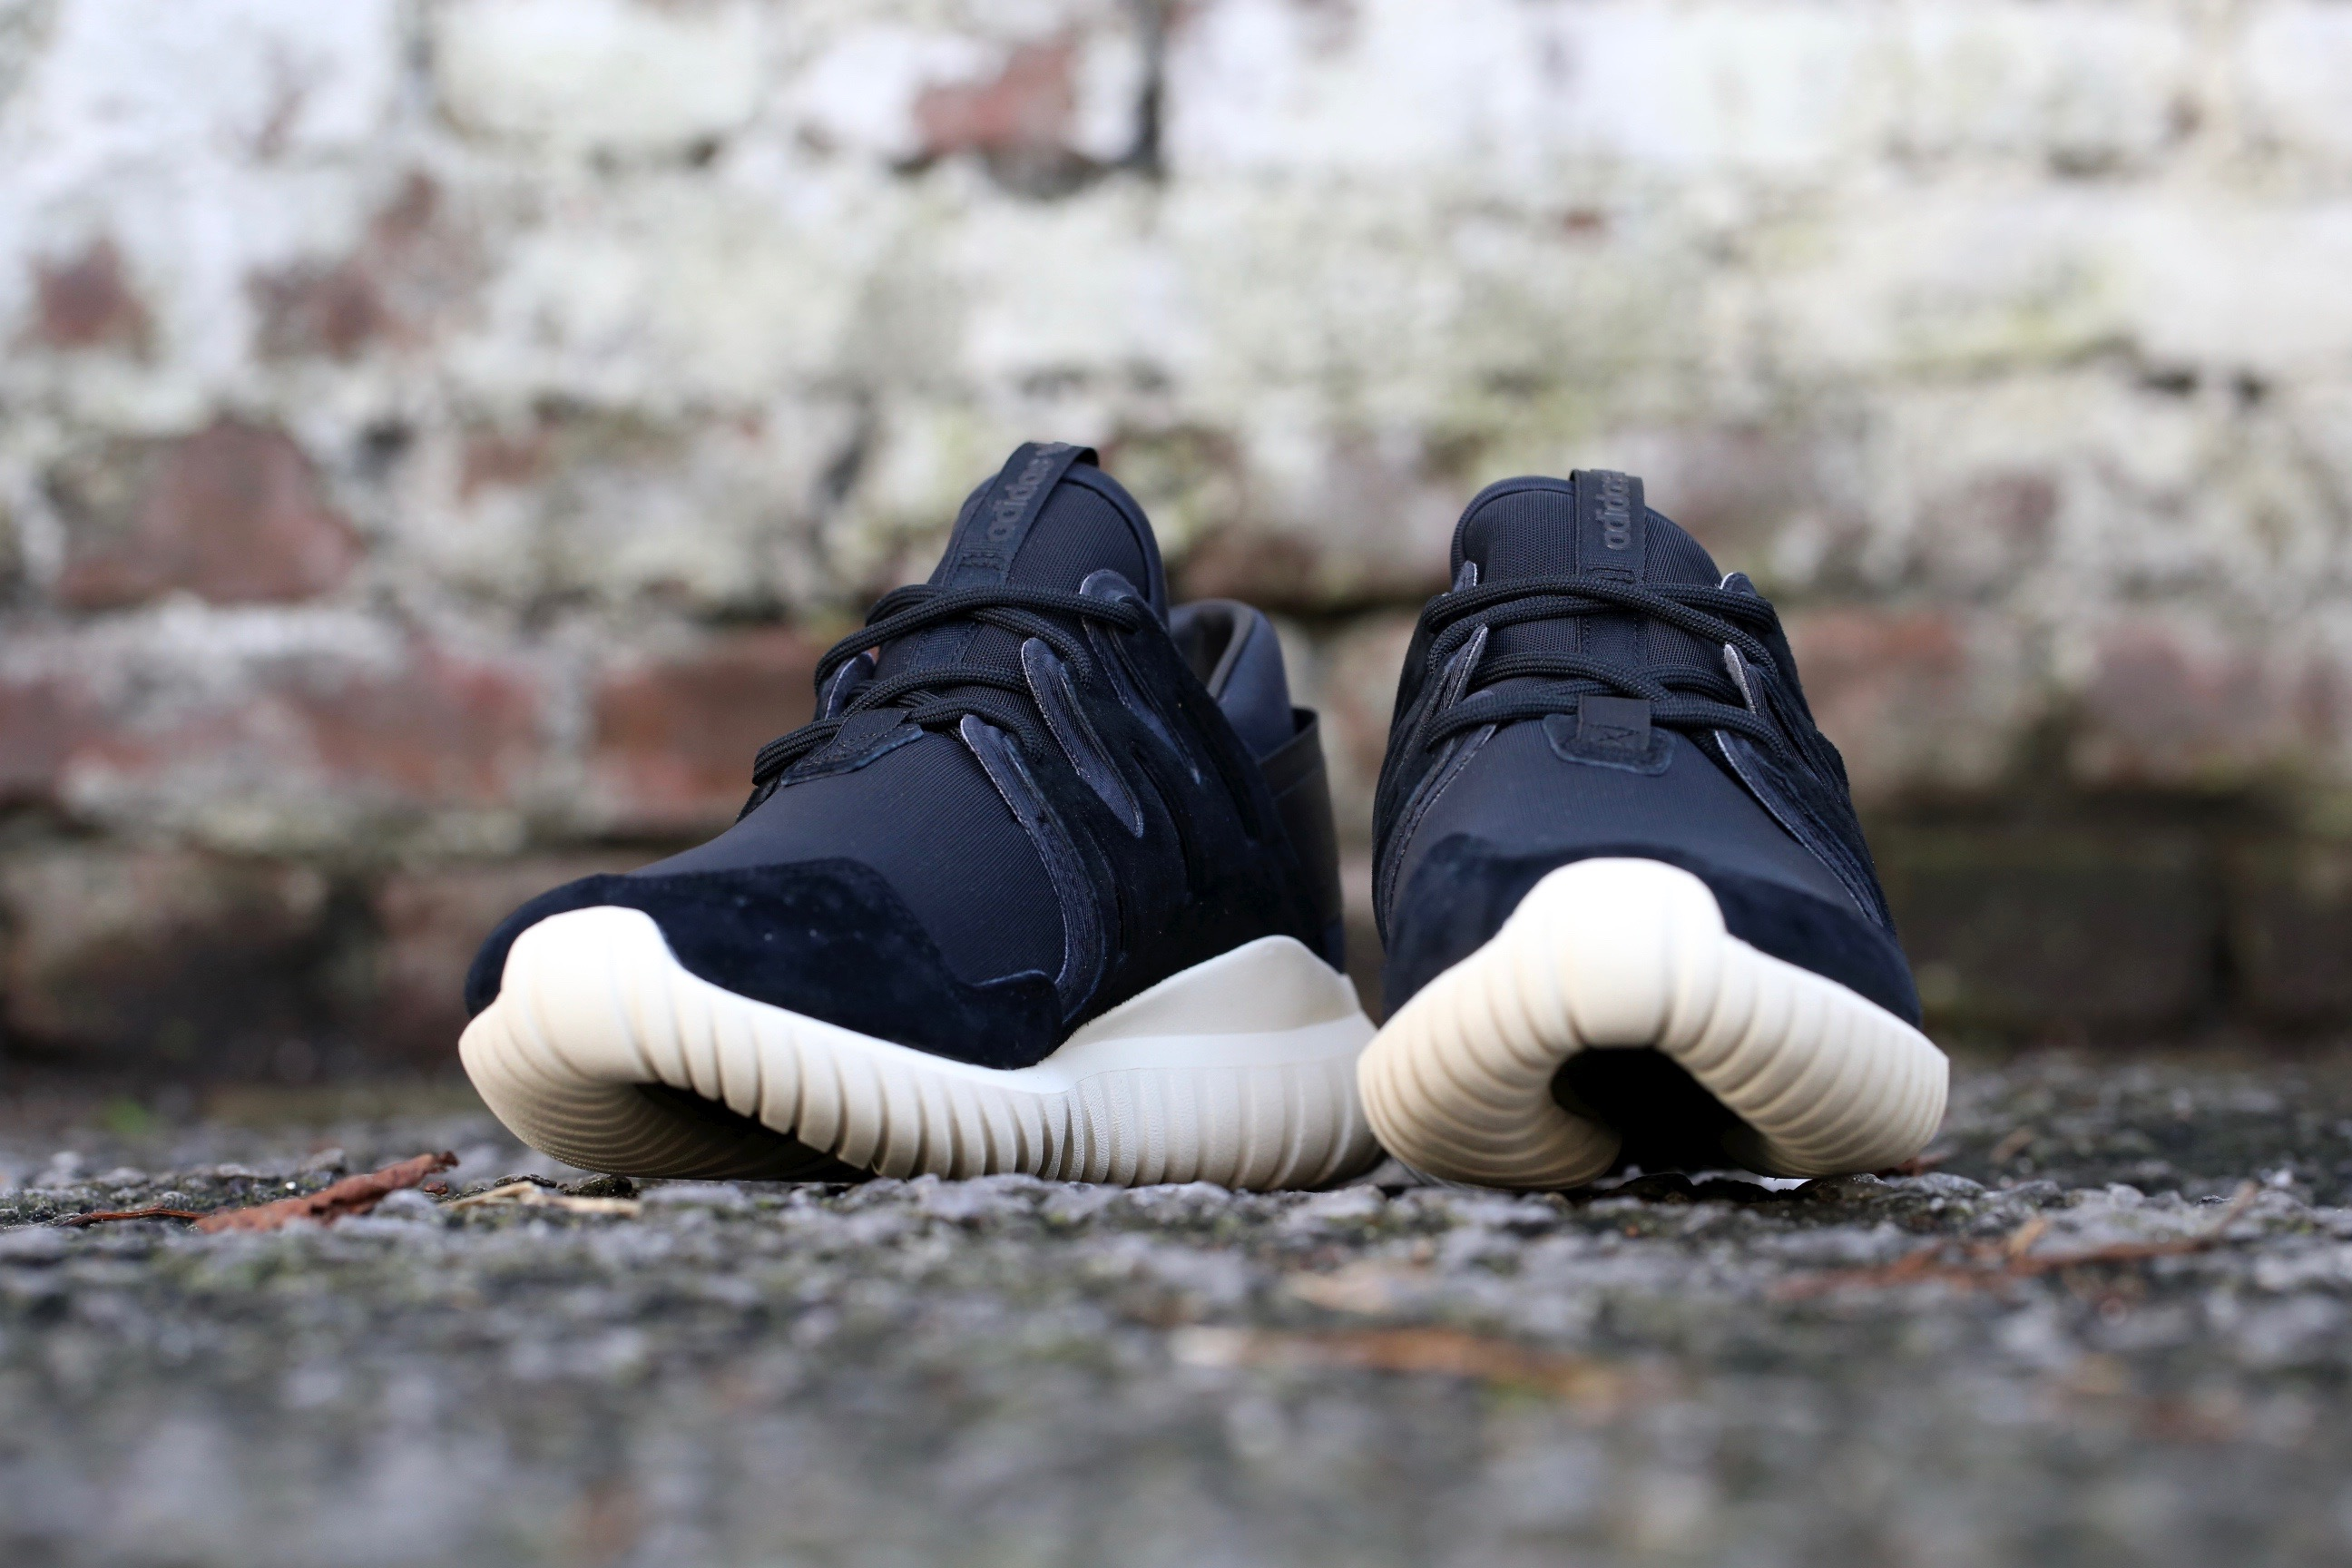 91f5dcaab3f adidas Originals Tubular Nova – Core Black   Core Black   Cream ...